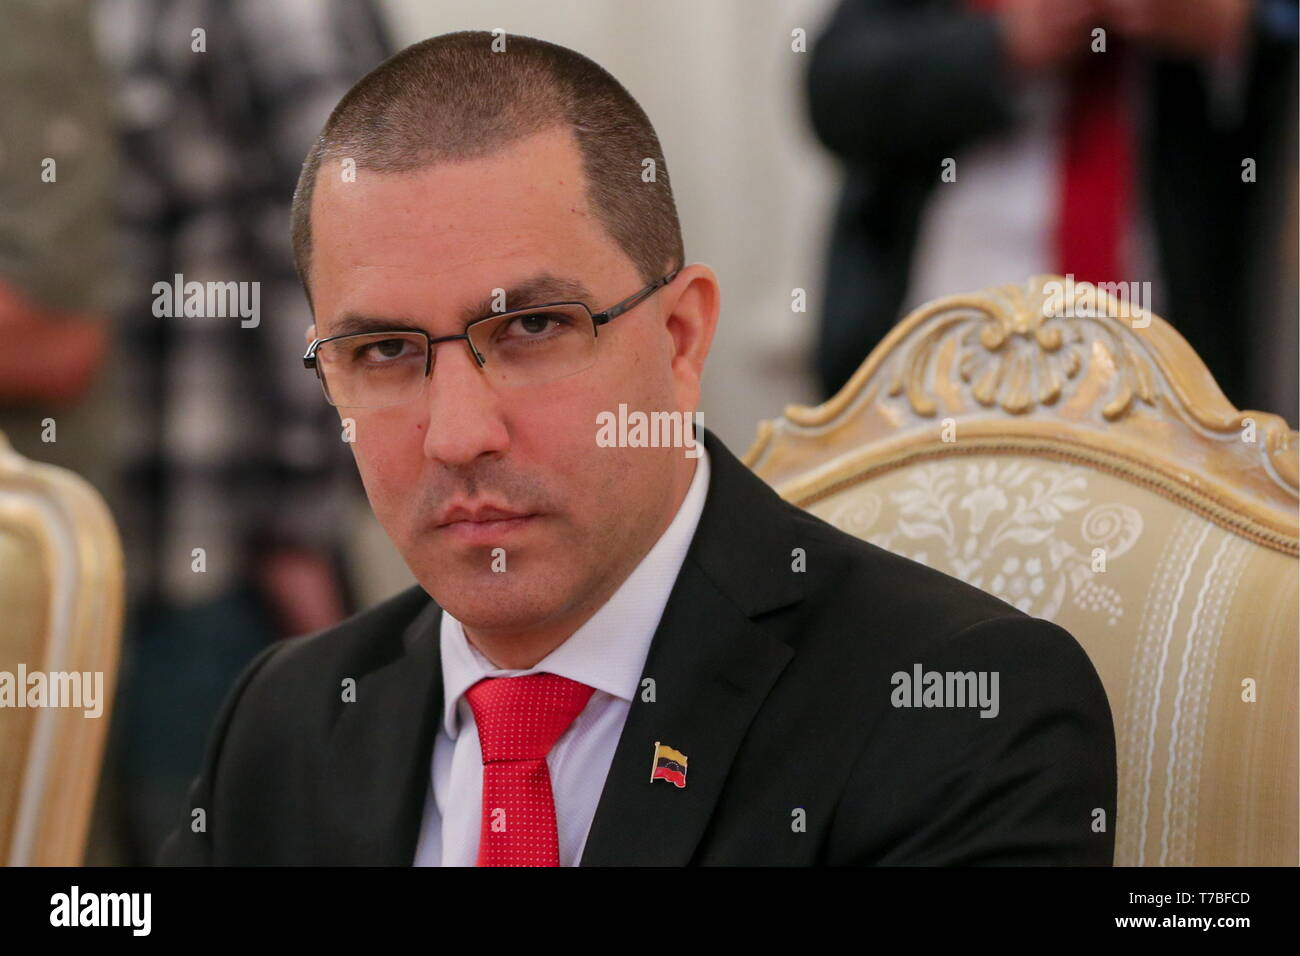 Moscow, Russia. 05th May, 2019. MOSCOW, RUSSIA - MAY 5, 2019: The Foreign Minister of the Bolivarian Republic of Venezuela Jorge Arreaza during a meeting with Russia's minister of foreign affairs at the Reception House of the Ministry of Foreign Affairs of Russia. Vladimir Gerdo/TASS Credit: ITAR-TASS News Agency/Alamy Live News - Stock Image